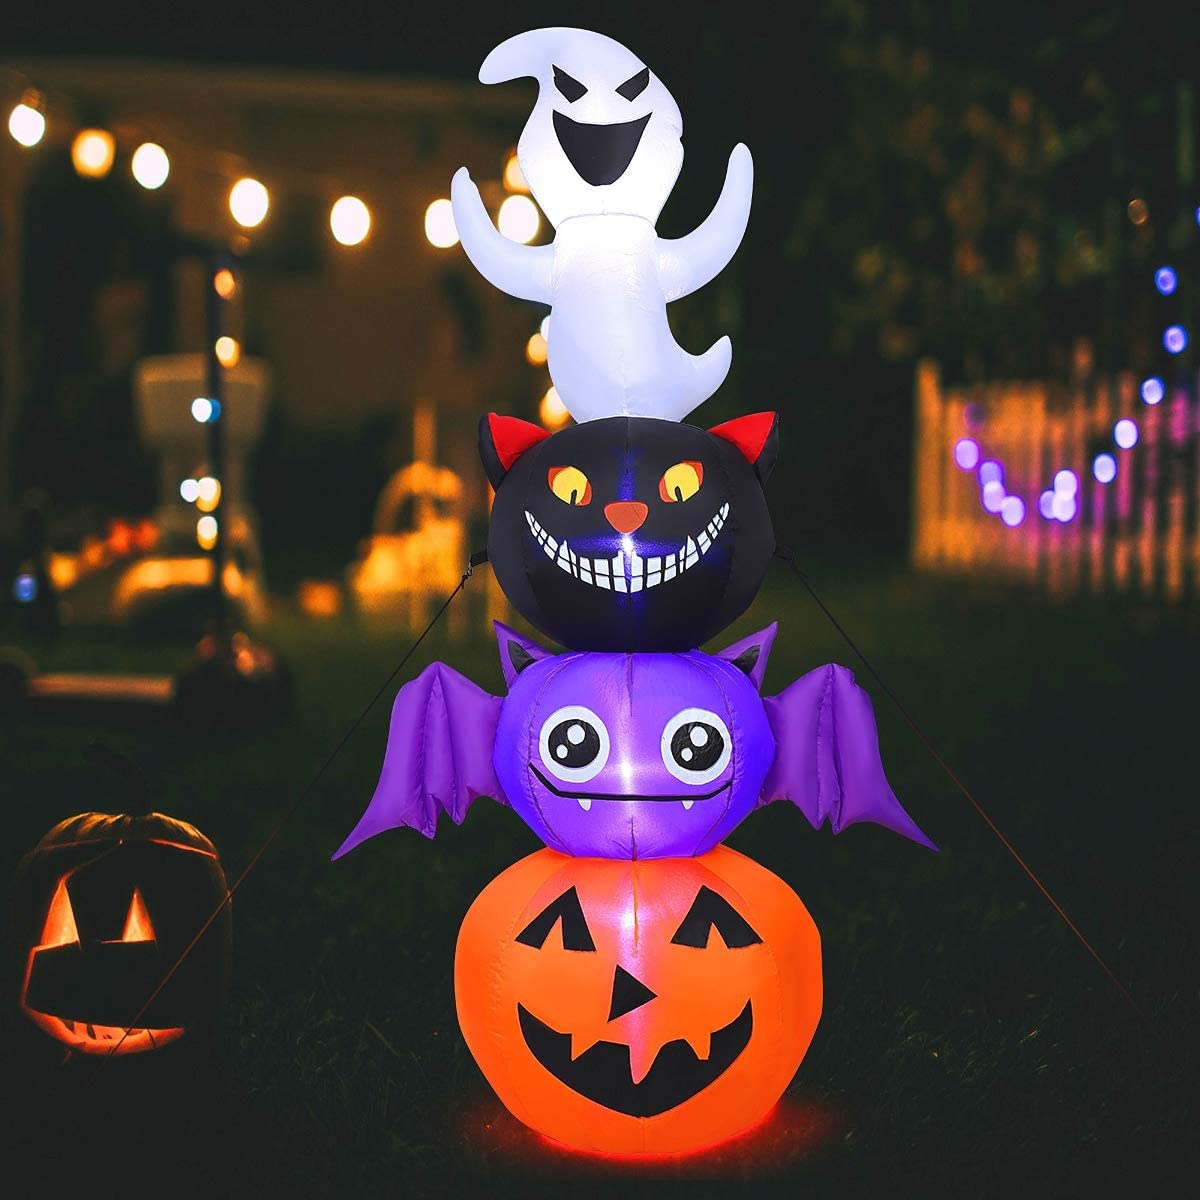 6ft Halloween Inflatables Pumpkin Outdoor Halloween Decor Built-in LED Lights with Tethers